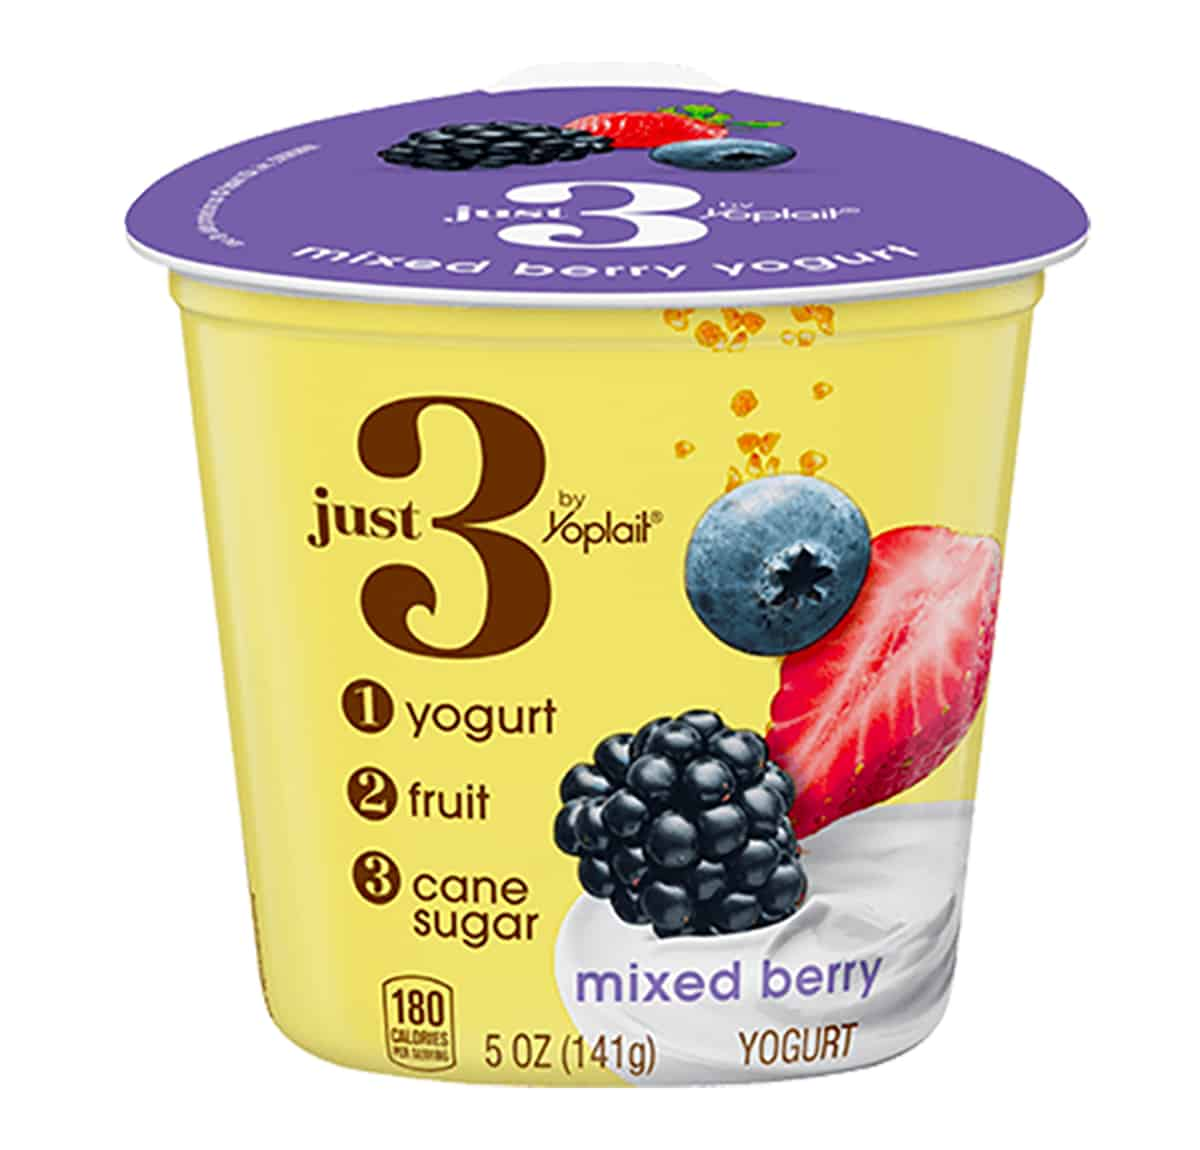 A package of Just 3 Yogurt by the brand yoplait.